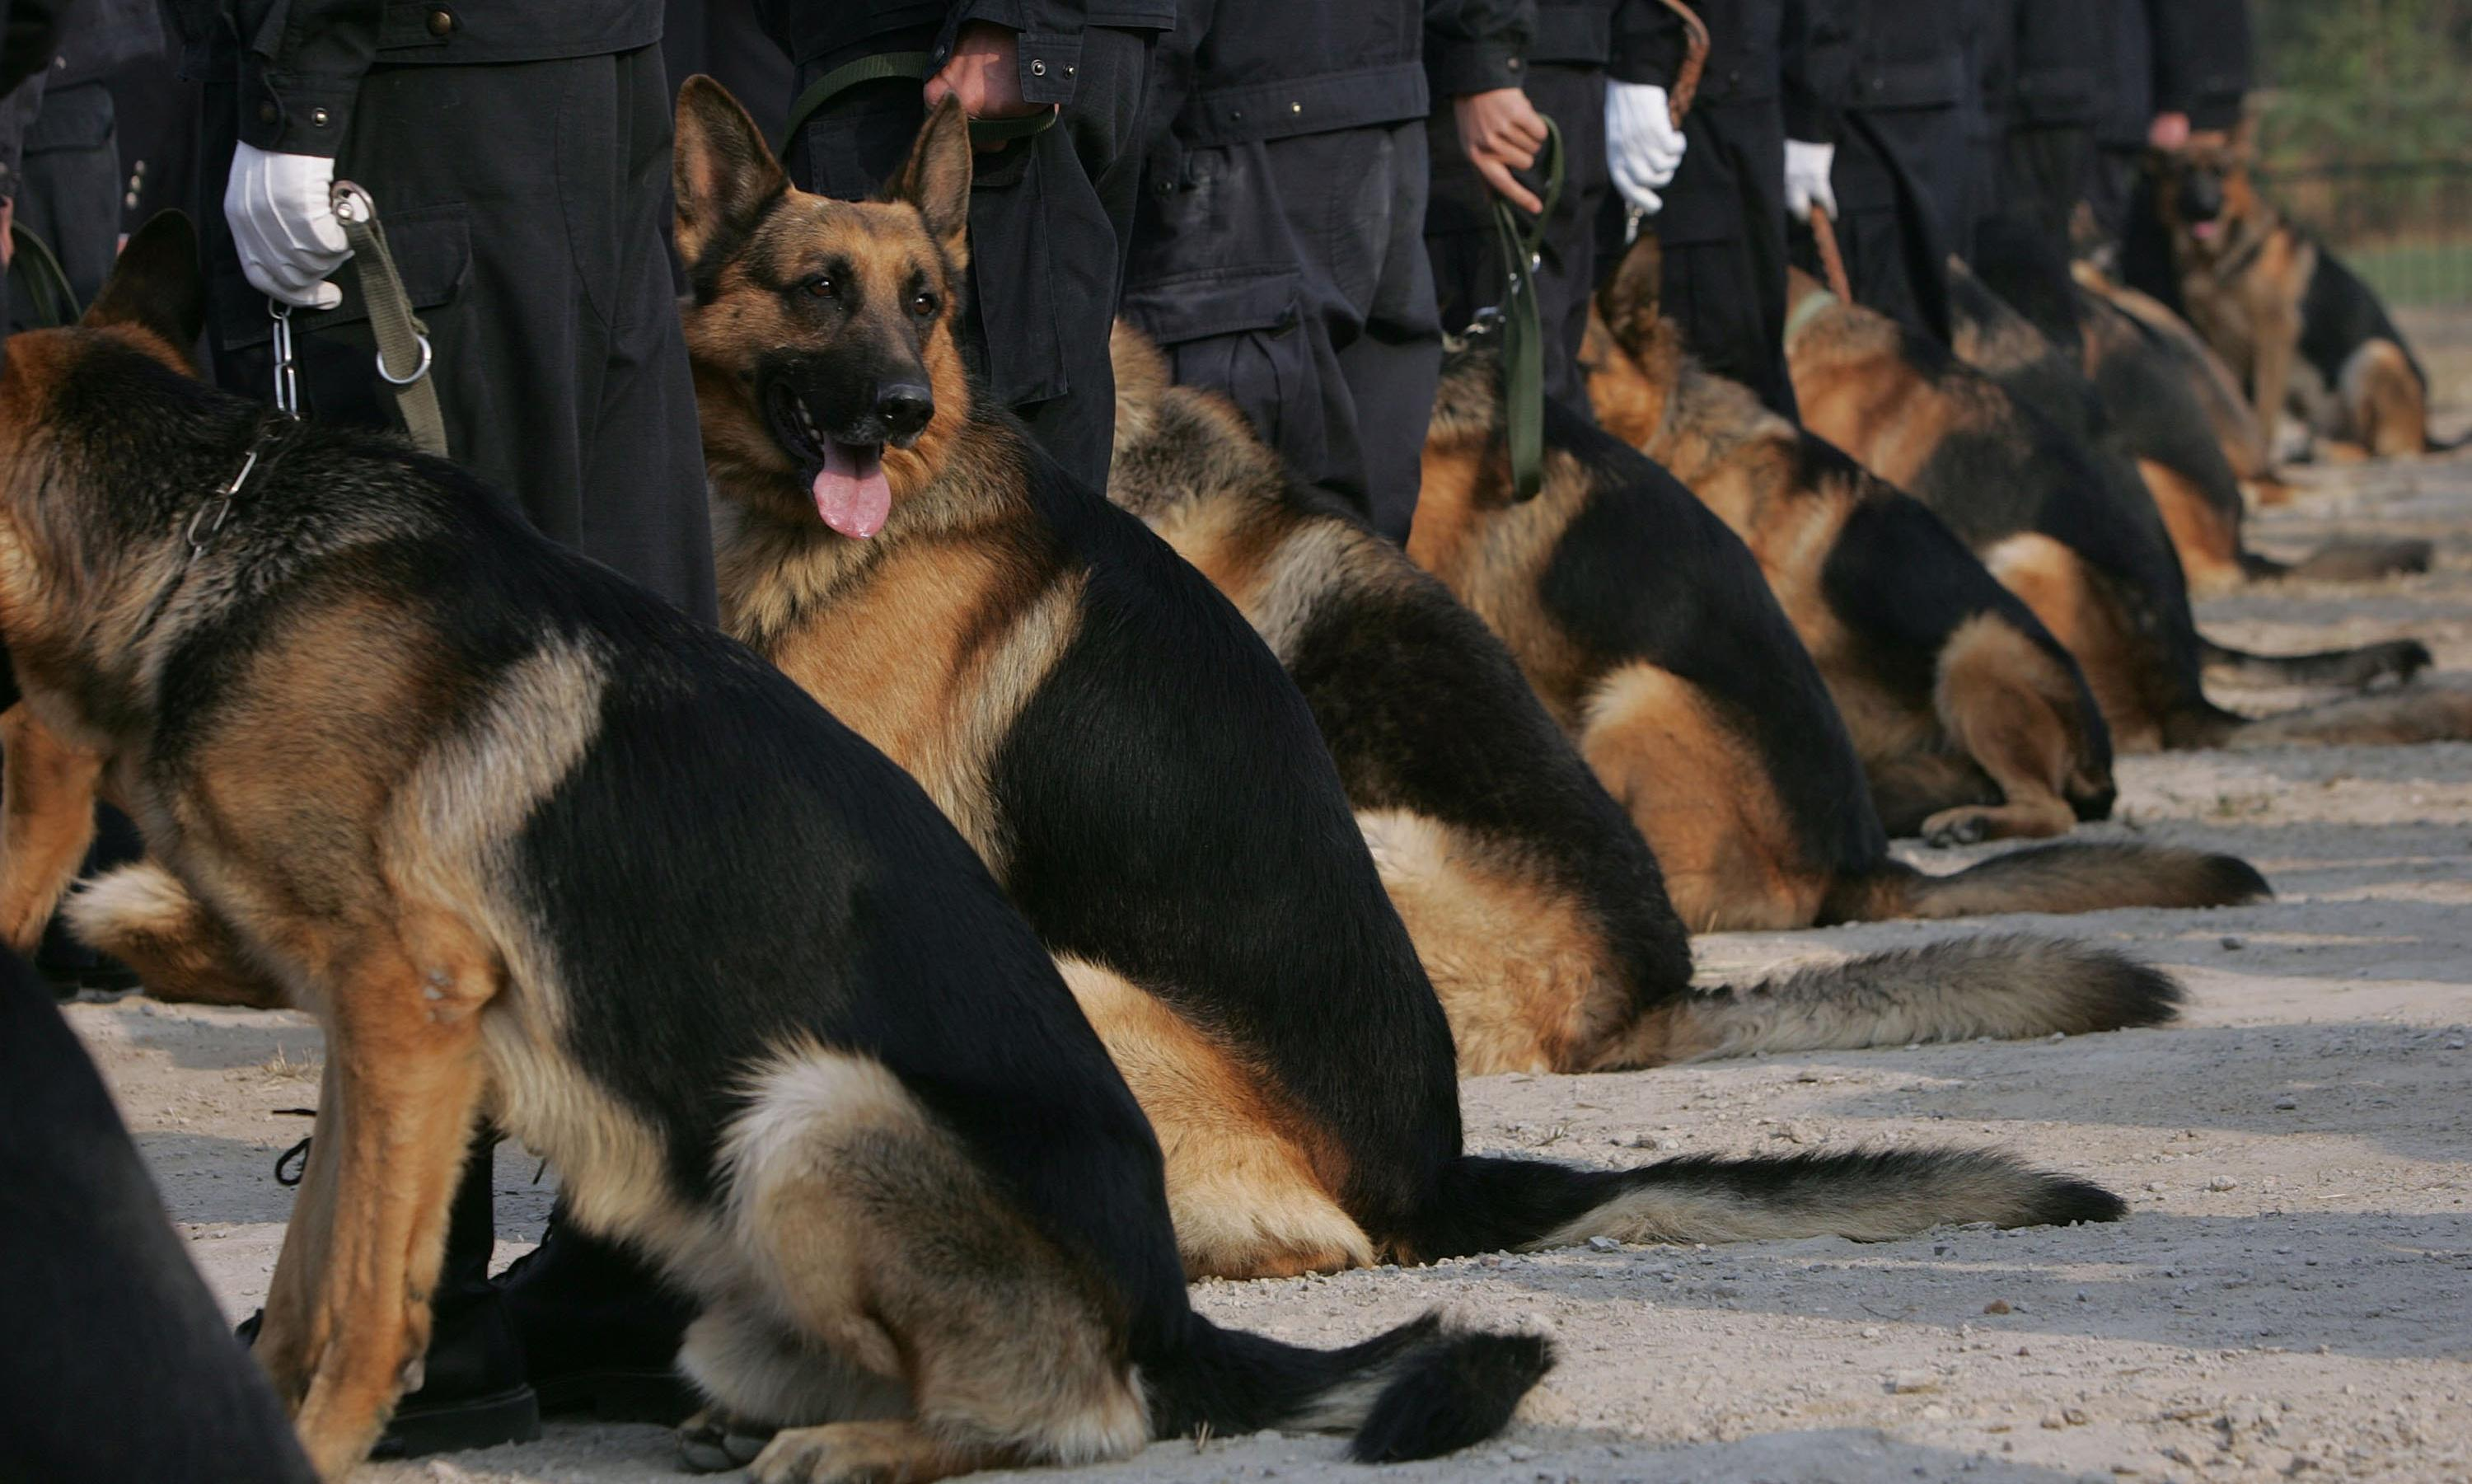 China clones 'Sherlock Holmes' police dog to cut training times – report